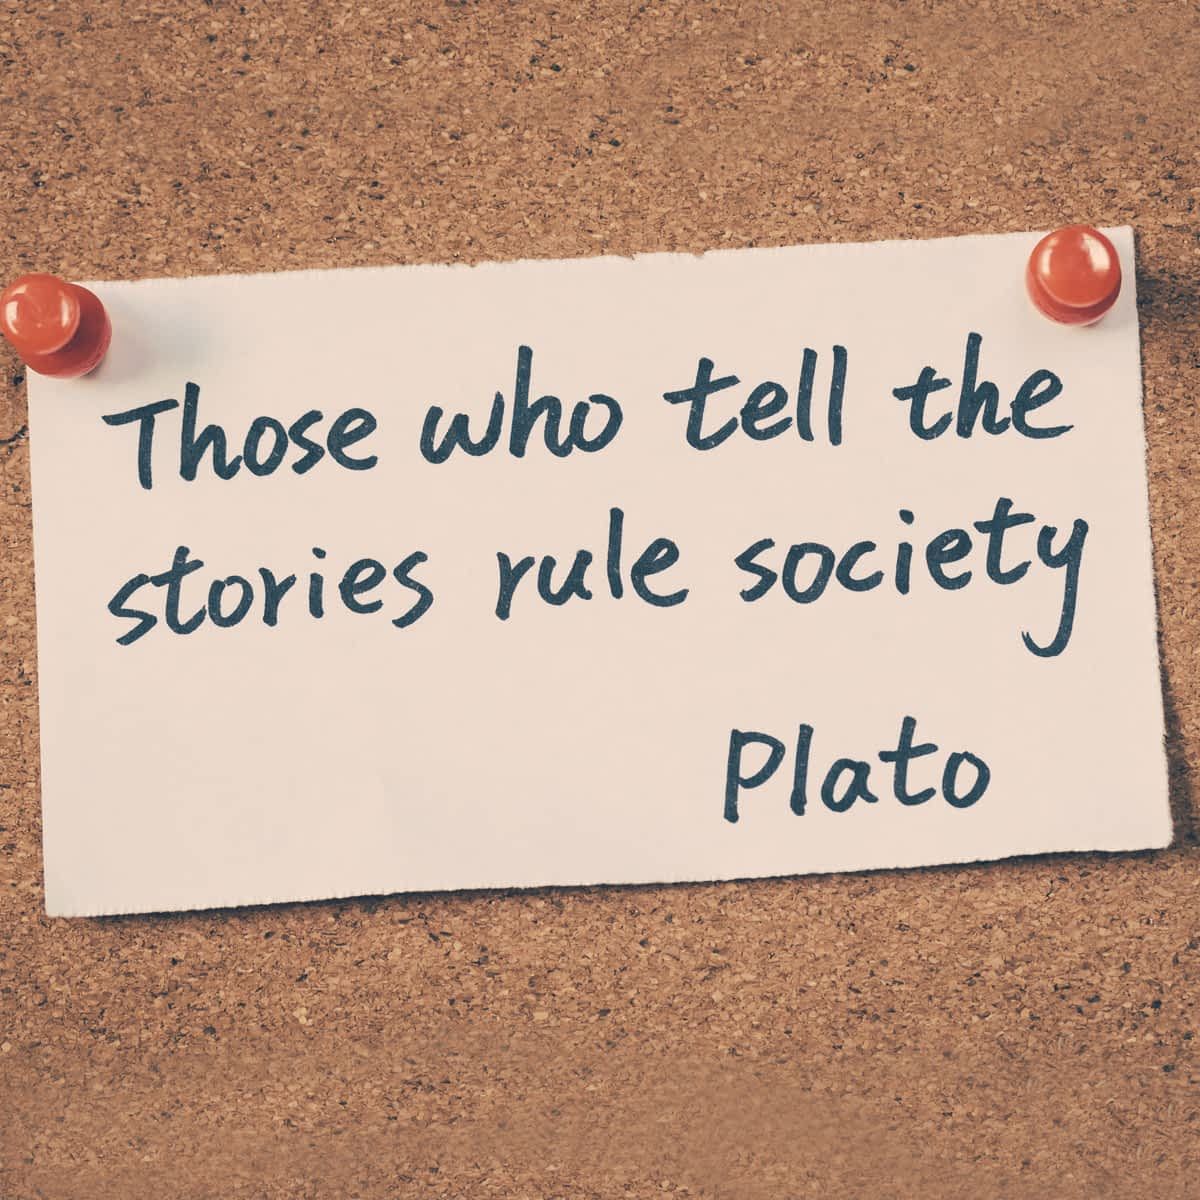 WHY STORYTELLING IS THE NEW HOT BUZZWORD!